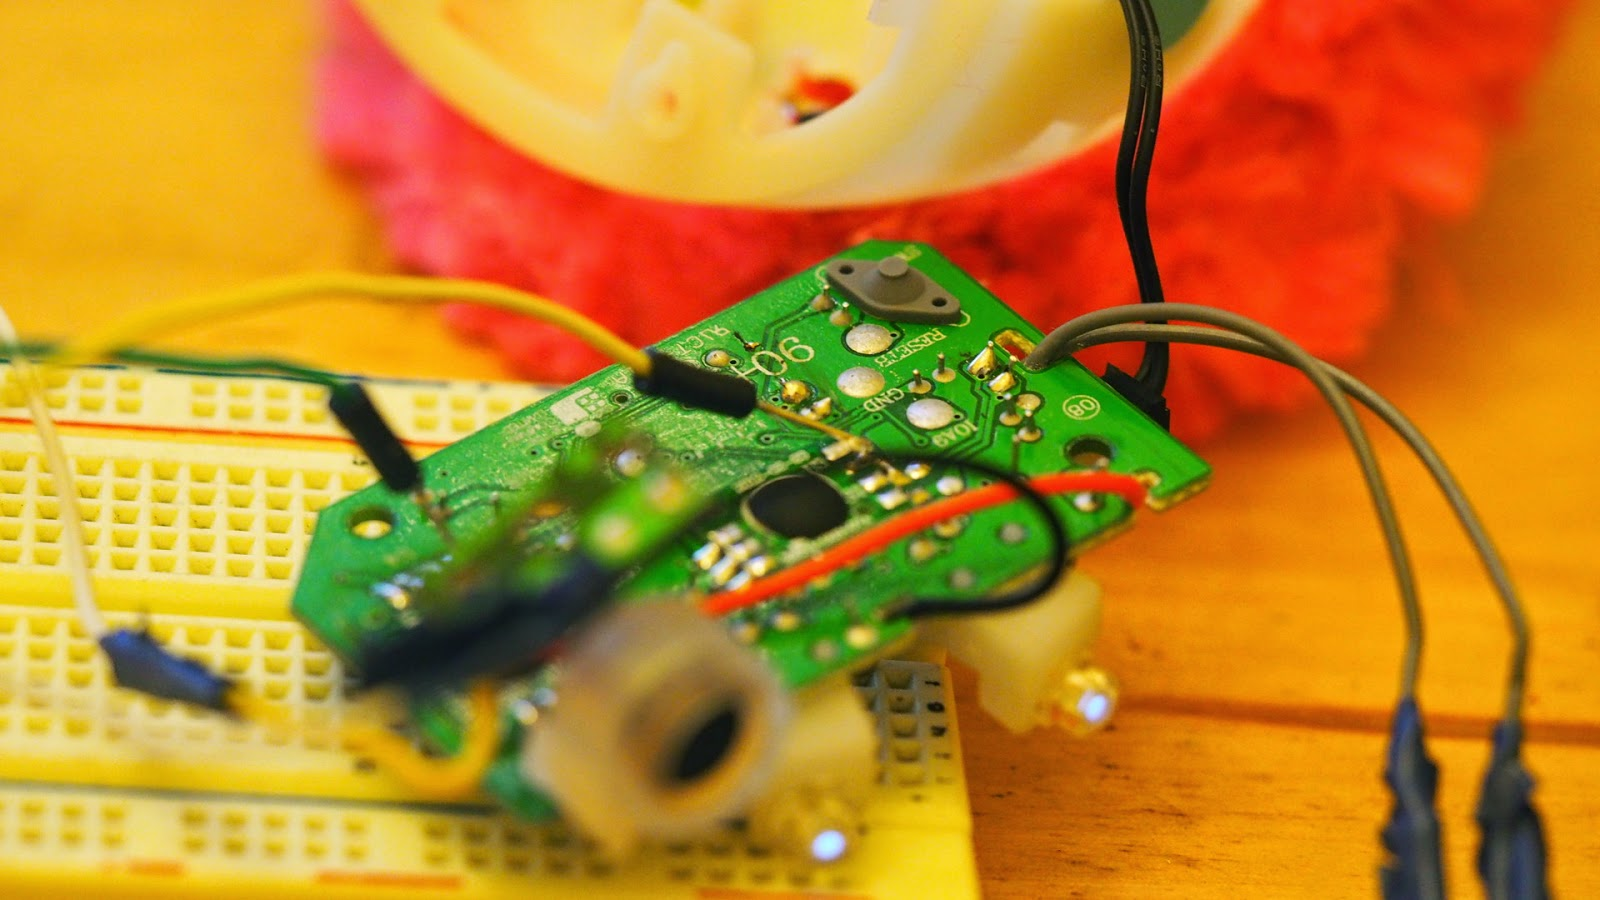 Little Scale Circuit Bent Furby Party Rocket With Teensy And Share